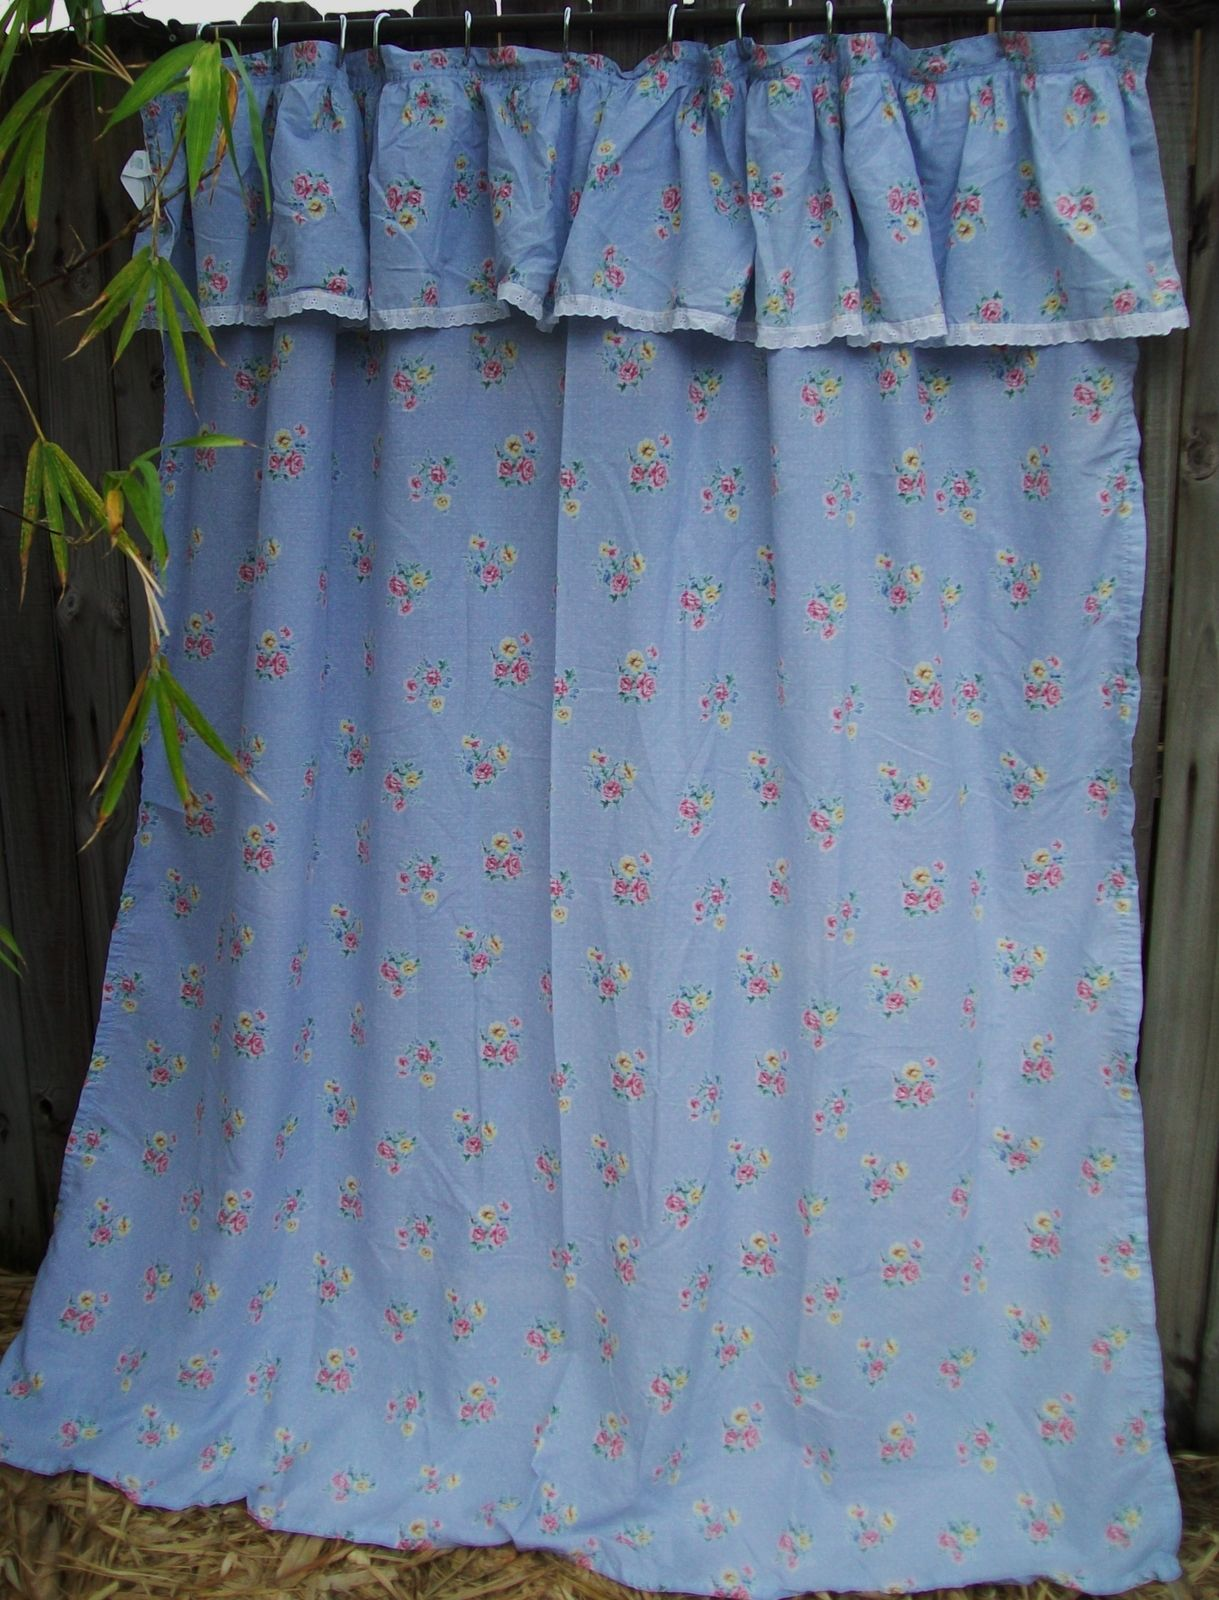 Light Blue Country Floral Fabric Shower Curtain With Lace Trim ...